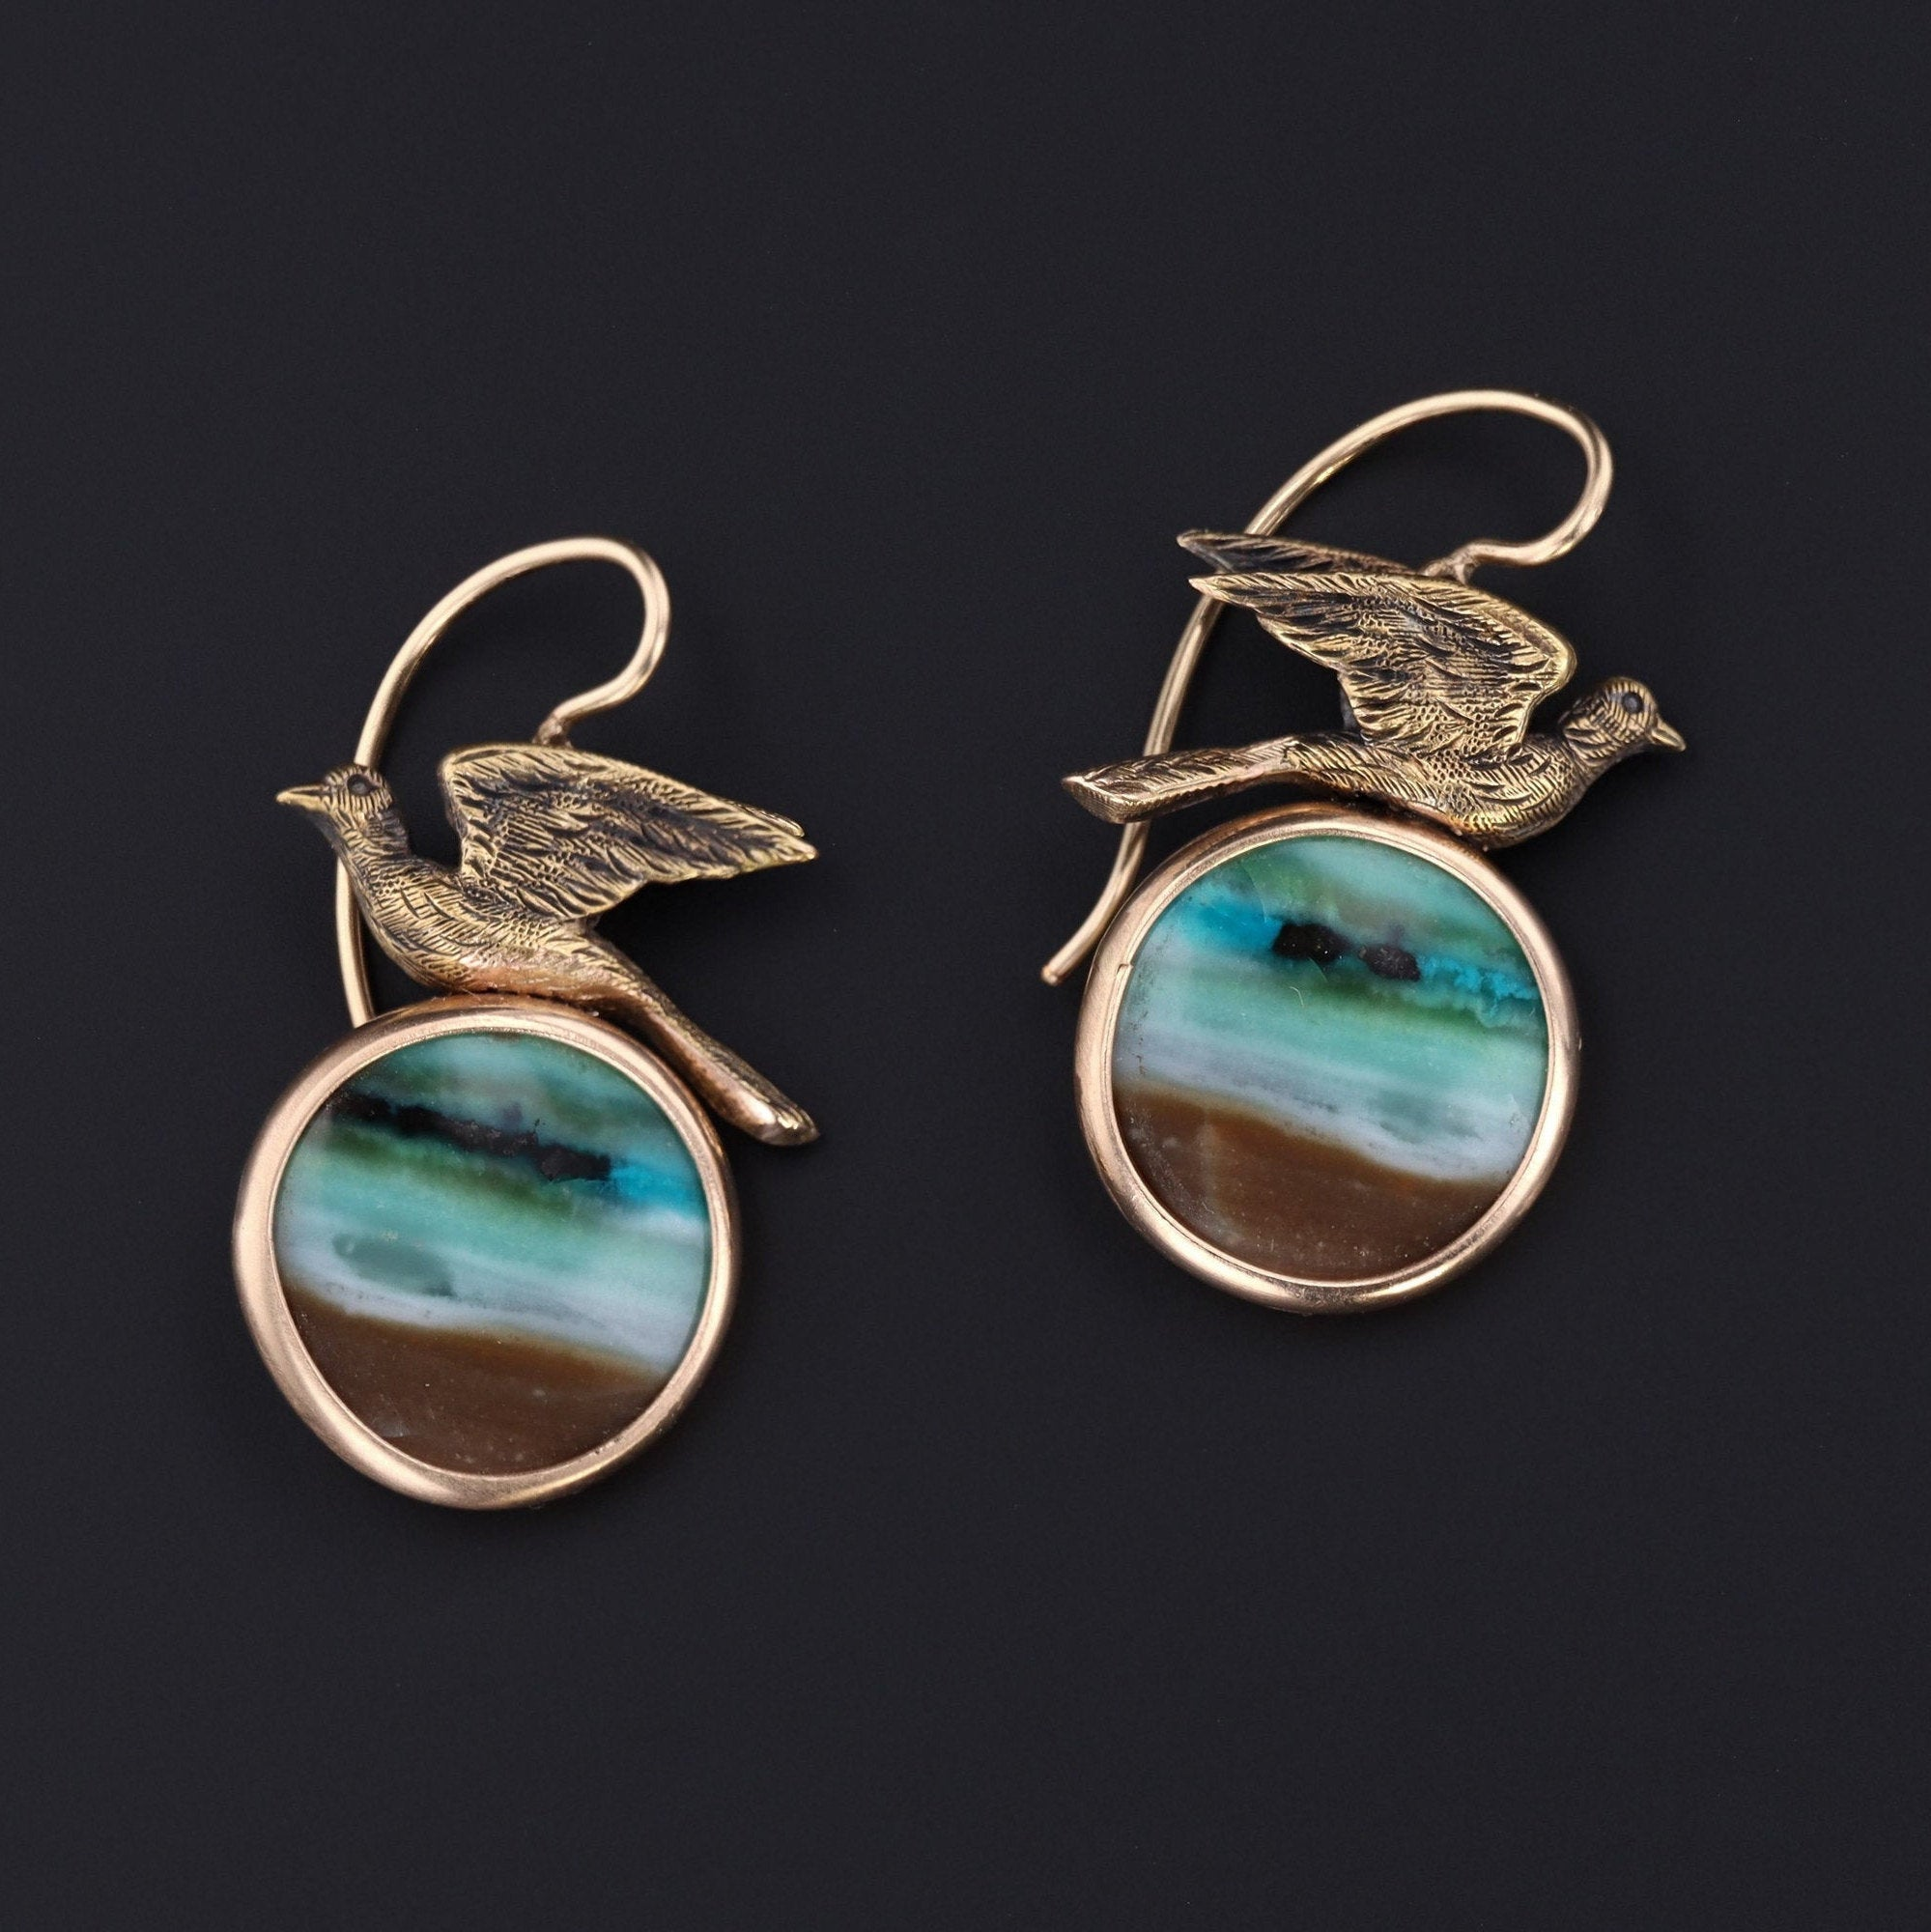 Bird Earrings | Opalized Wood Dangle Earrings | 14k Gold Earrings | Antique Pin Conversion Earrings